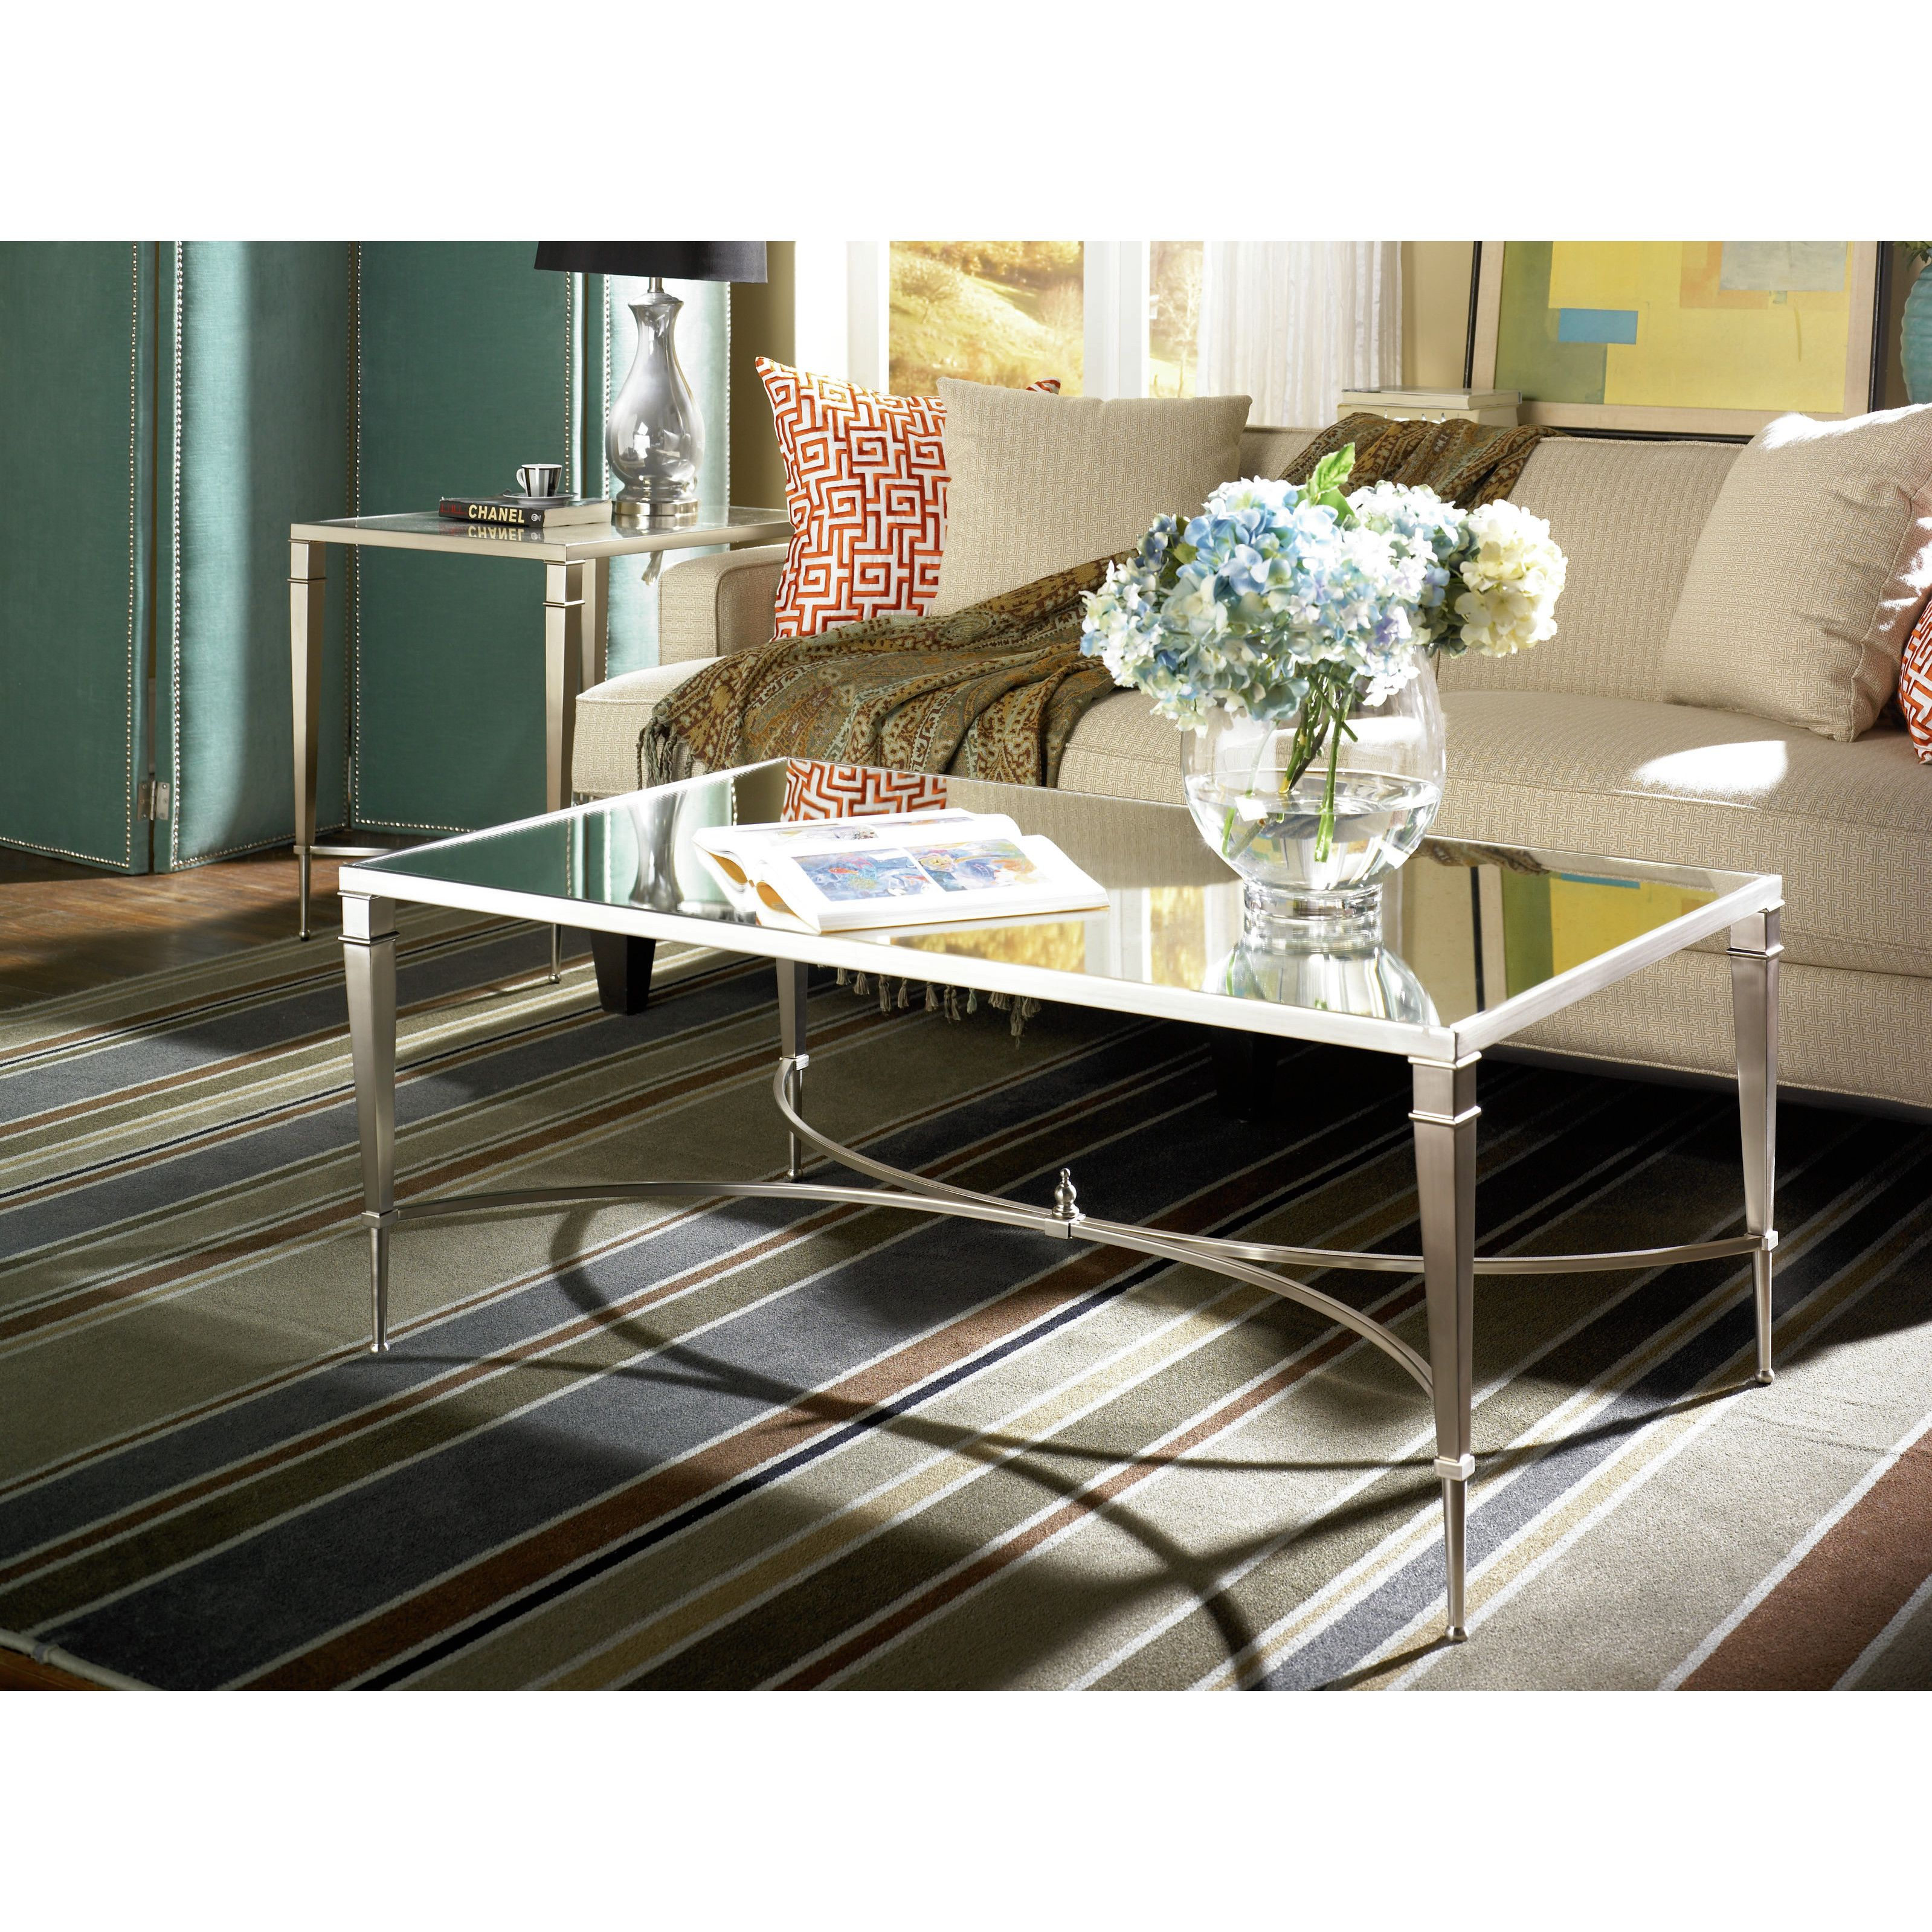 Hammary Mallory Coffee Table Coffee Table Mirrored Coffee Tables Coffee Table Rectangle [ 3198 x 3198 Pixel ]